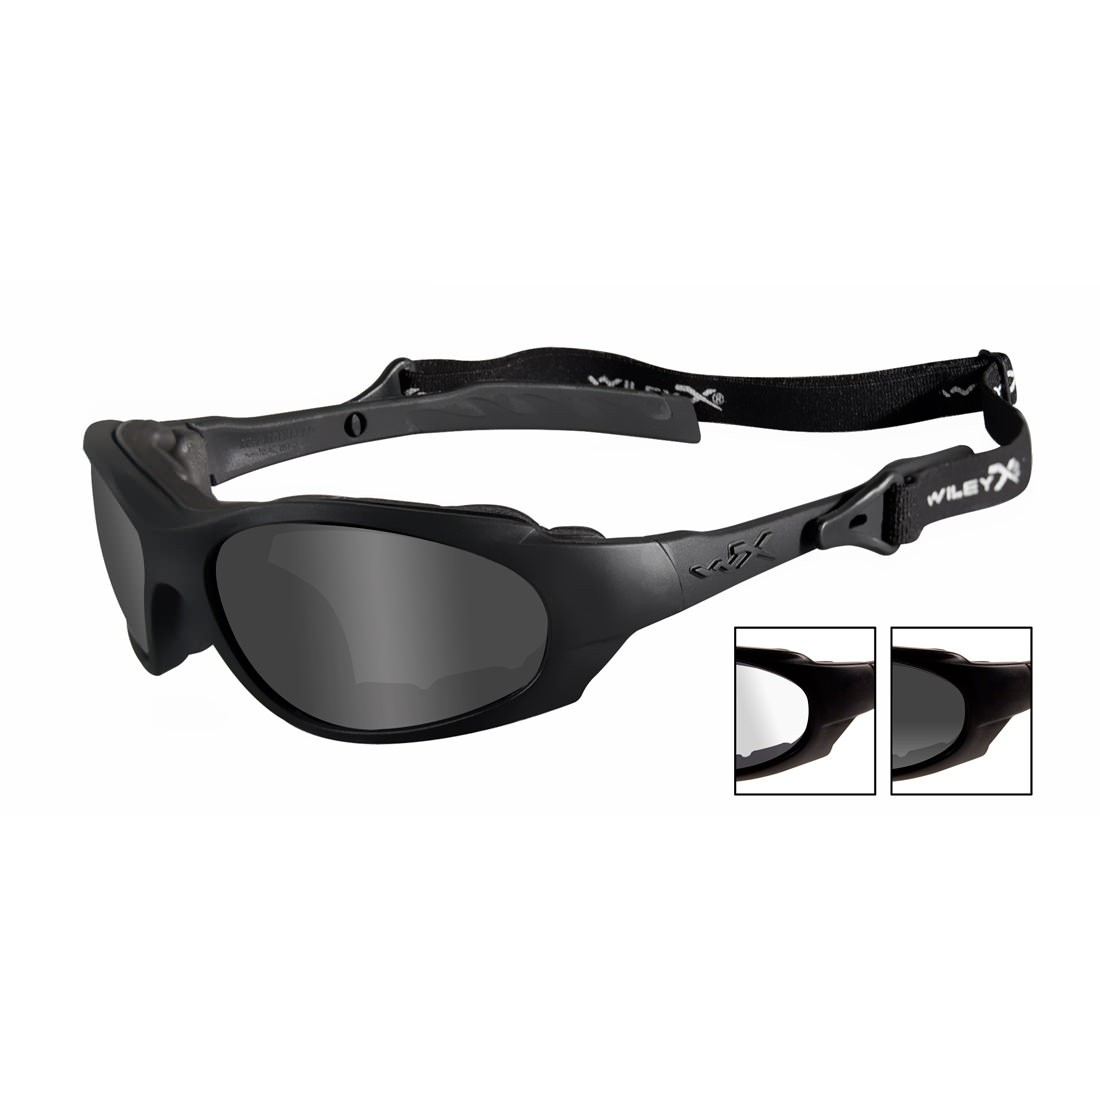 Wiley X XL-1 2 Lens Sunglasses Goggles Hybrid WIL-291